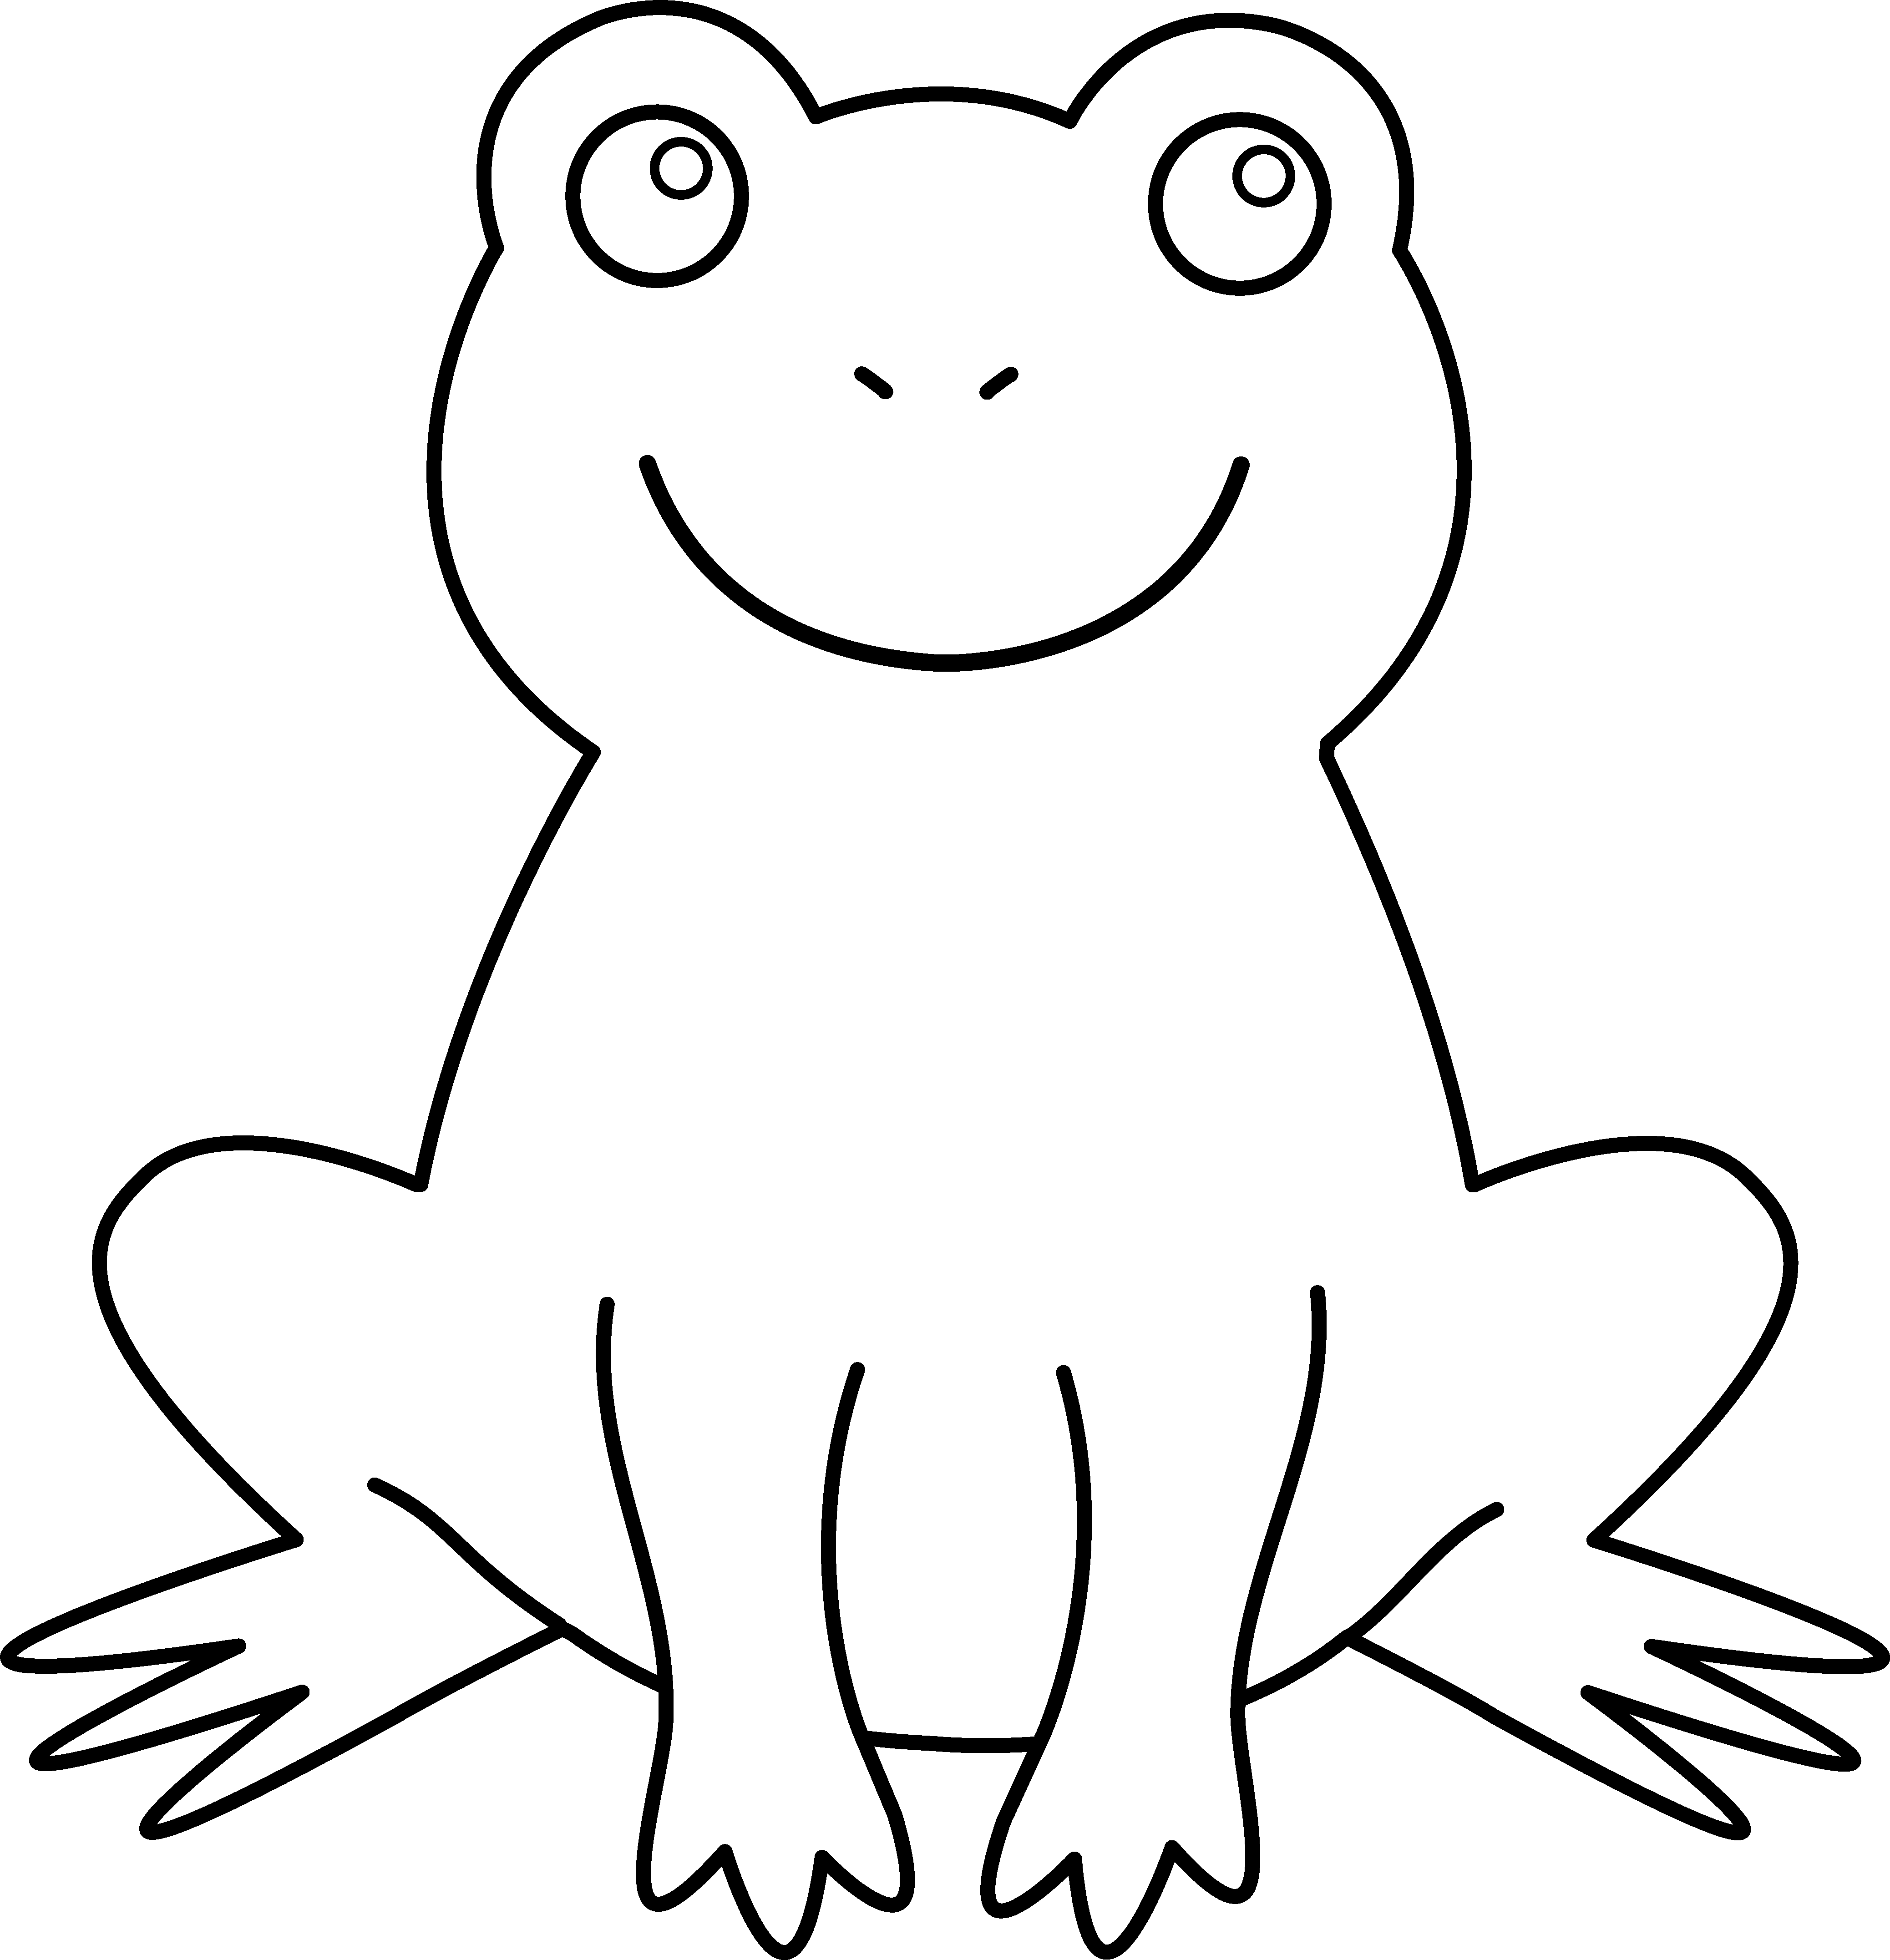 toad%20clipart%20black%20and%20white